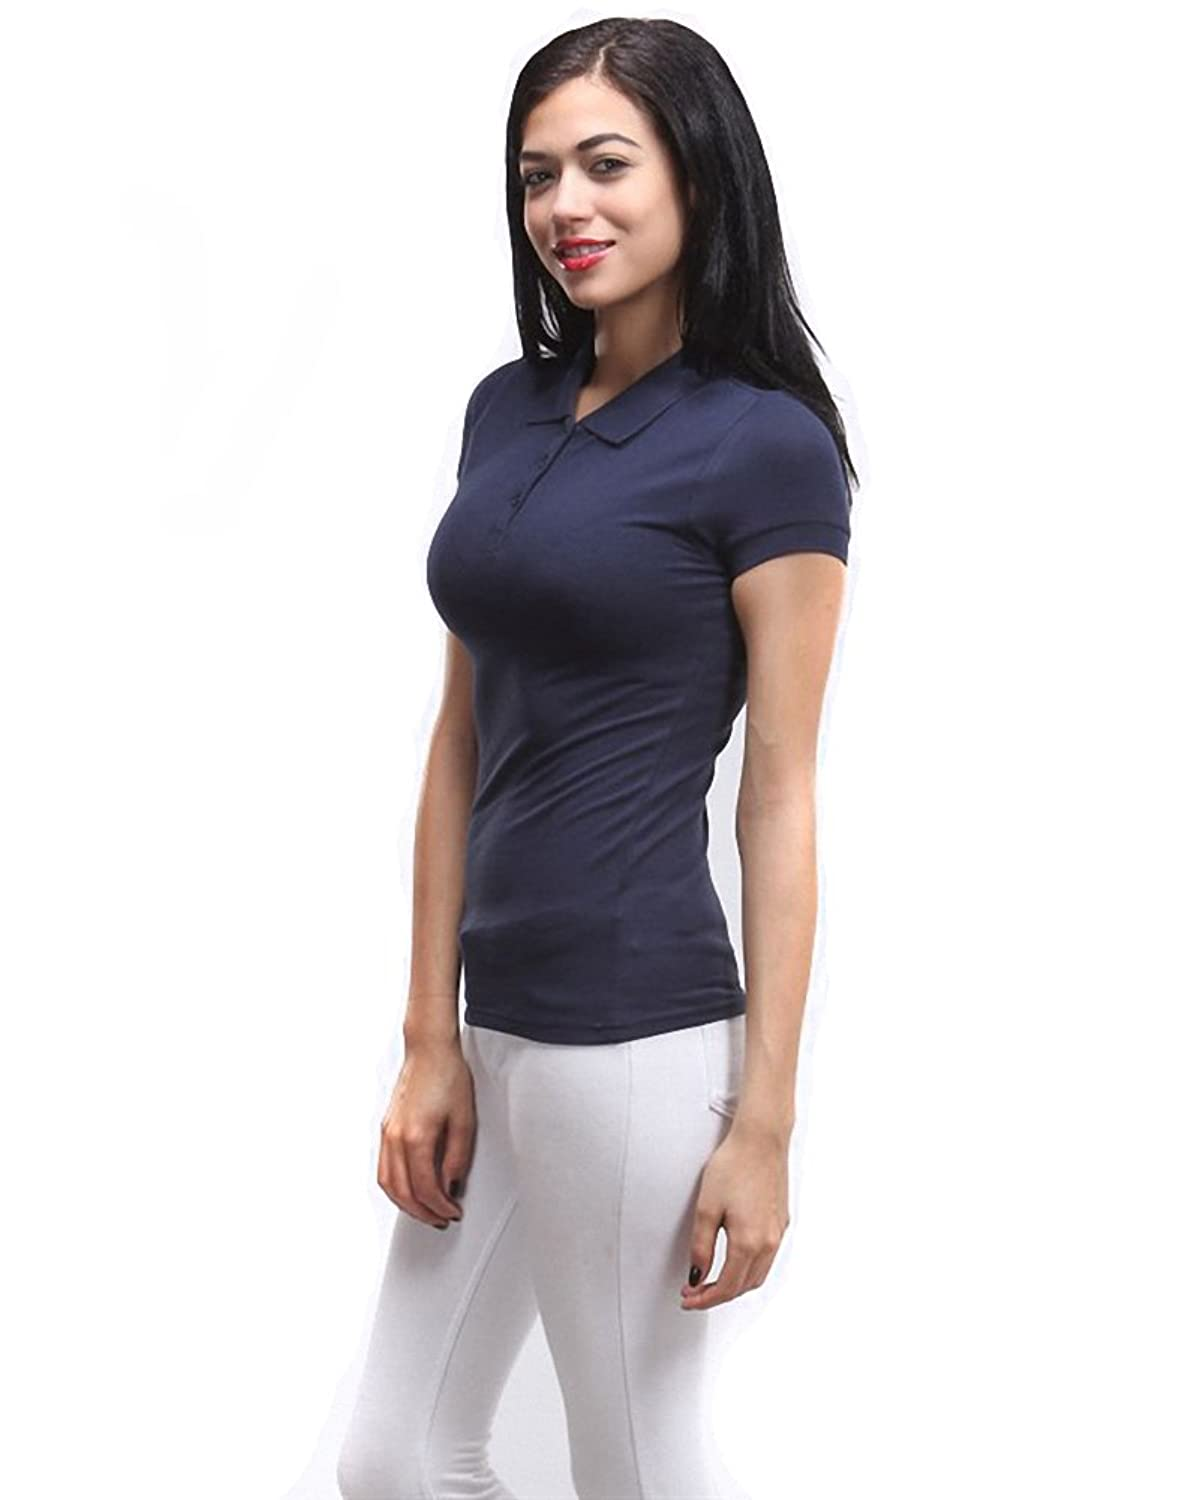 Sassy Apparel Women's Basic Pique Polo T Shirt Top